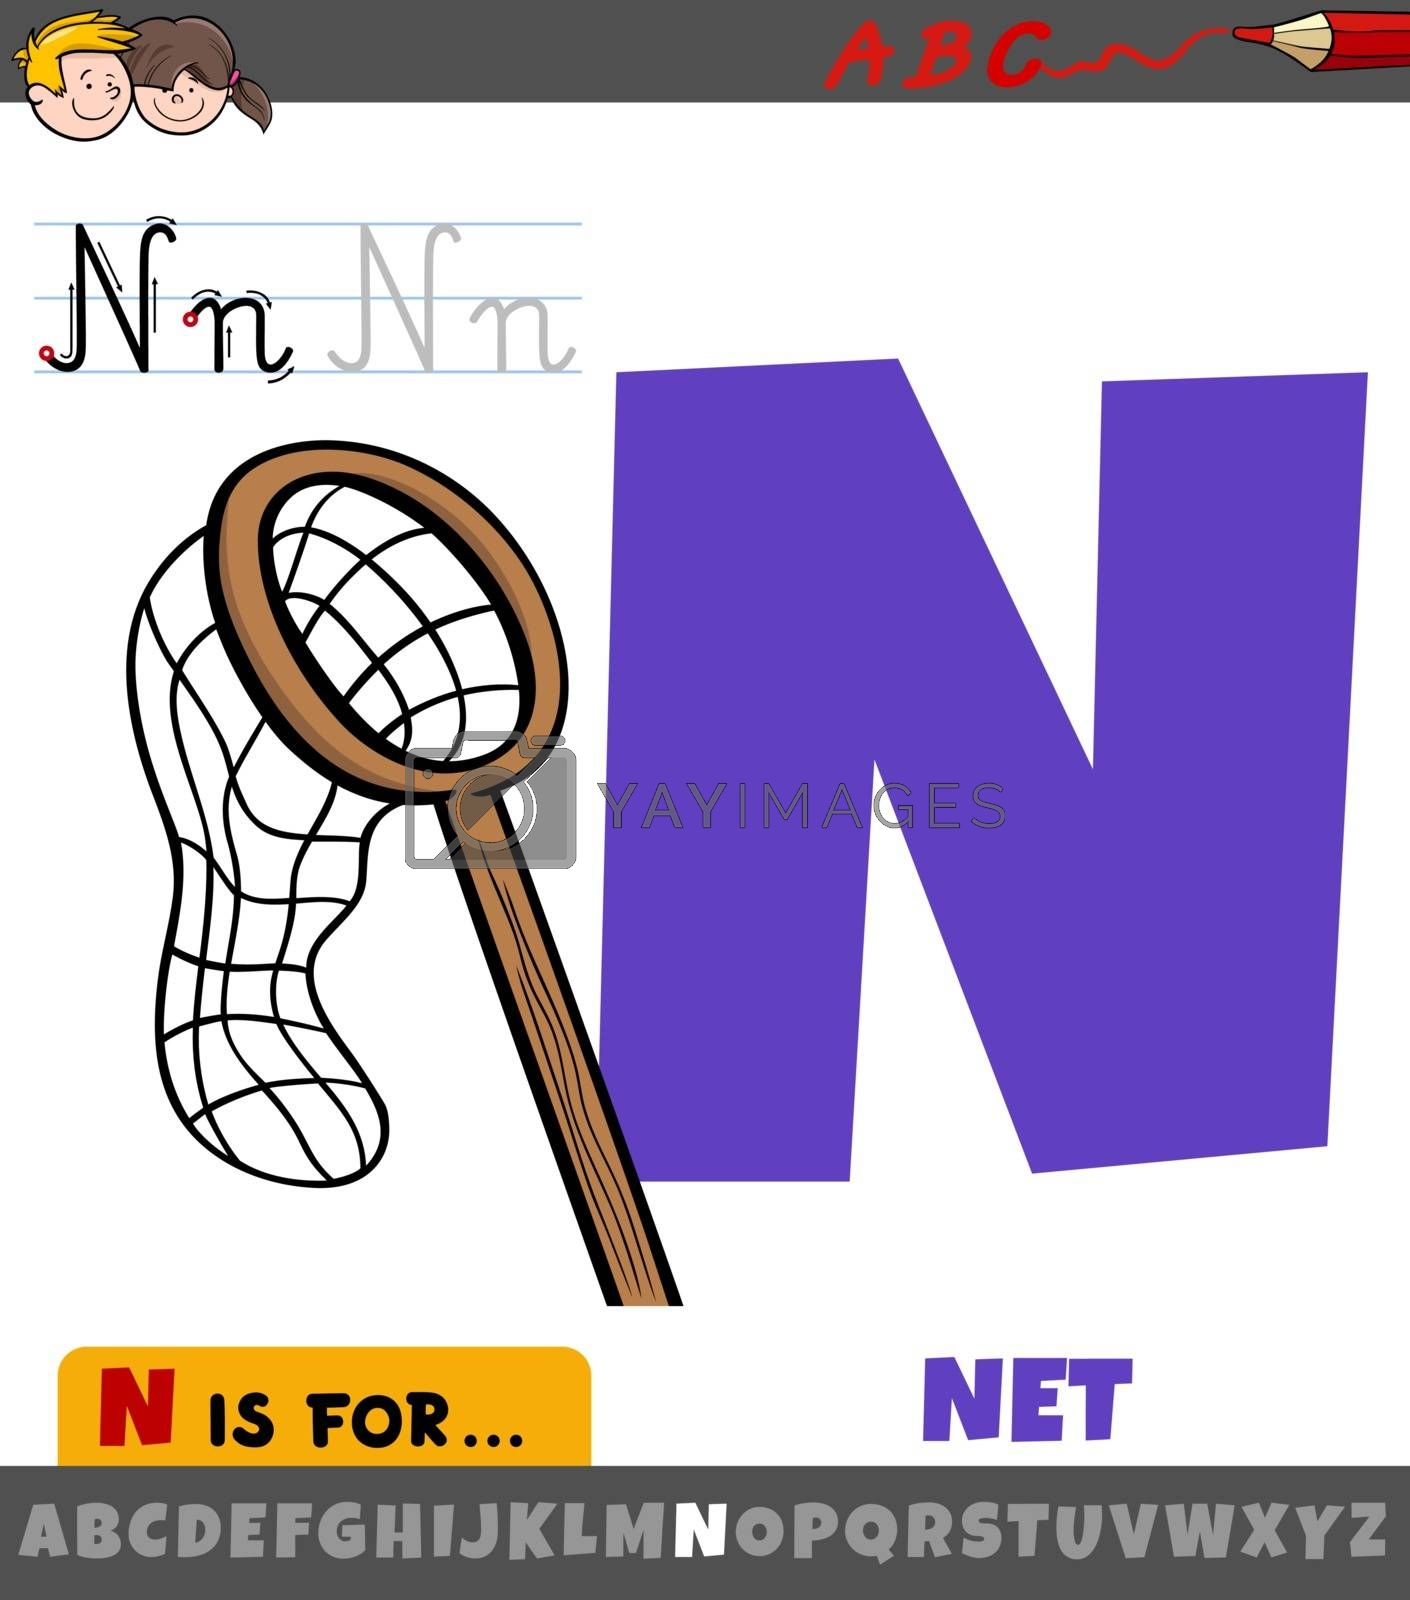 Educational cartoon illustration of letter N from alphabet with net for children